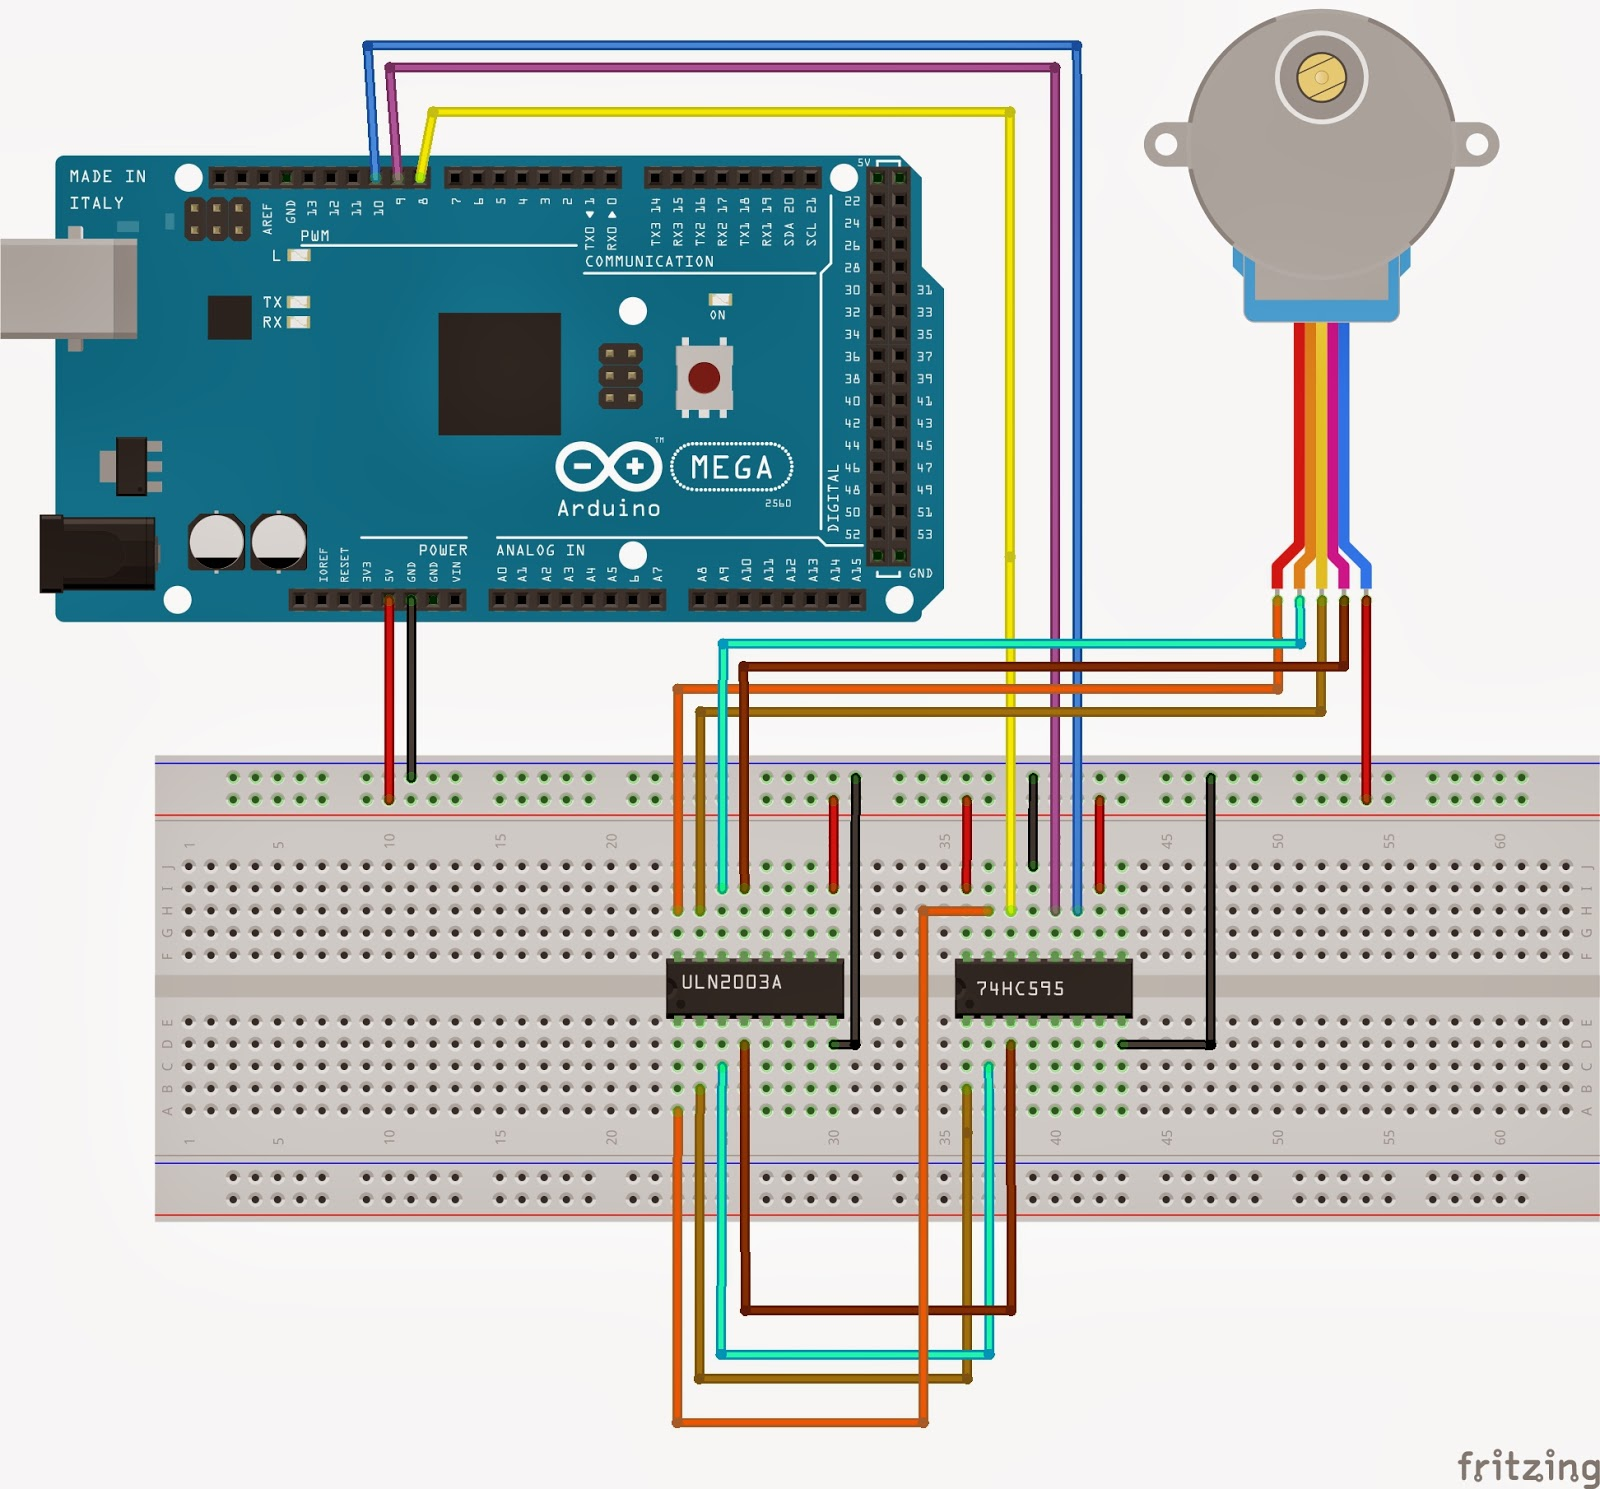 How to connect the rgb led to the arduino